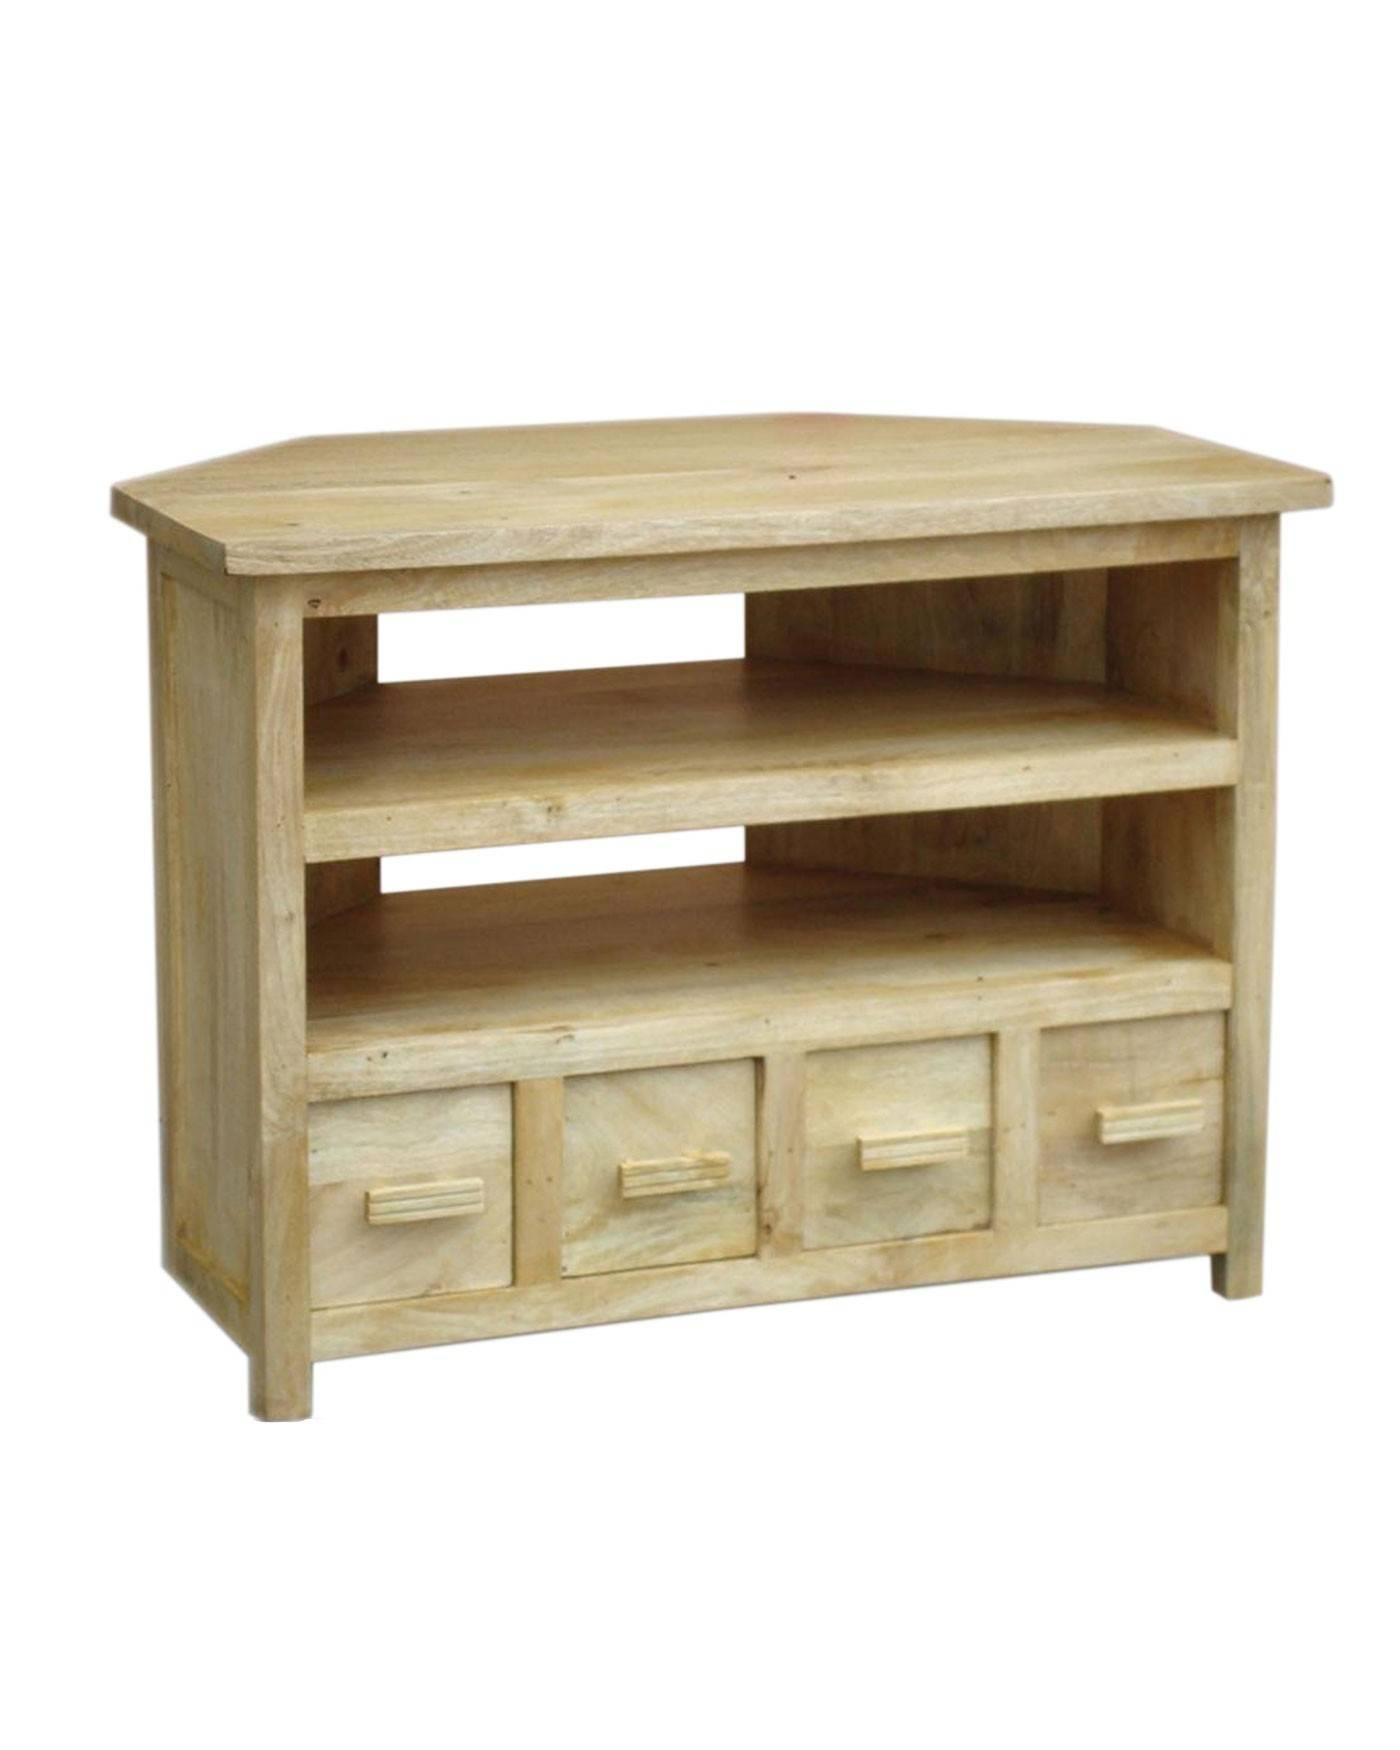 Mangat Tall Corner Tv Unit Oak Shade - Homescapes regarding Oak Effect Corner Tv Stand (Image 5 of 15)